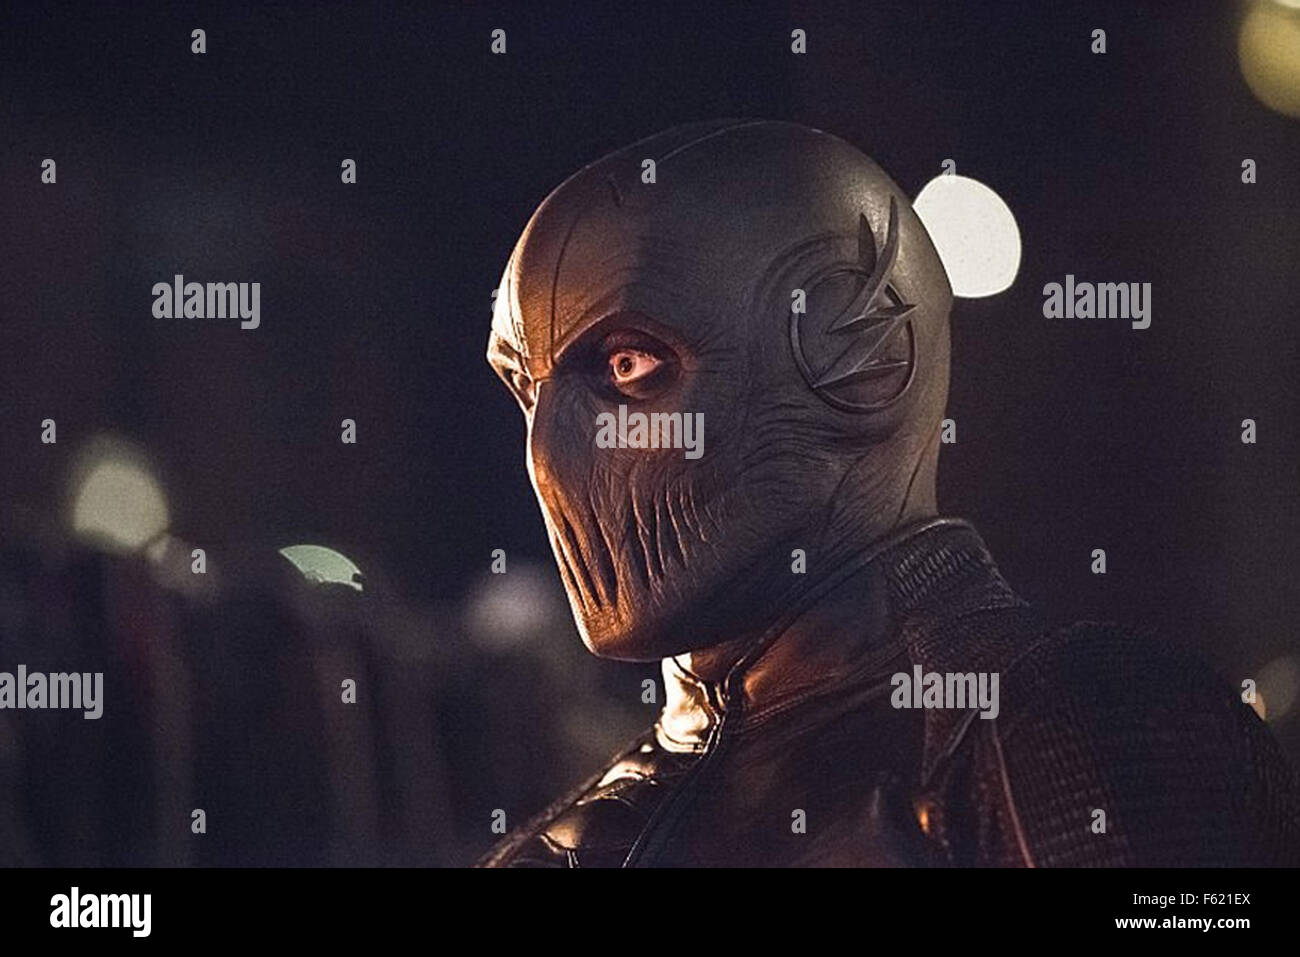 THE FLASH   2015 The CW TV series episode Enter Zoom with the character Reverse Flash - Stock Image